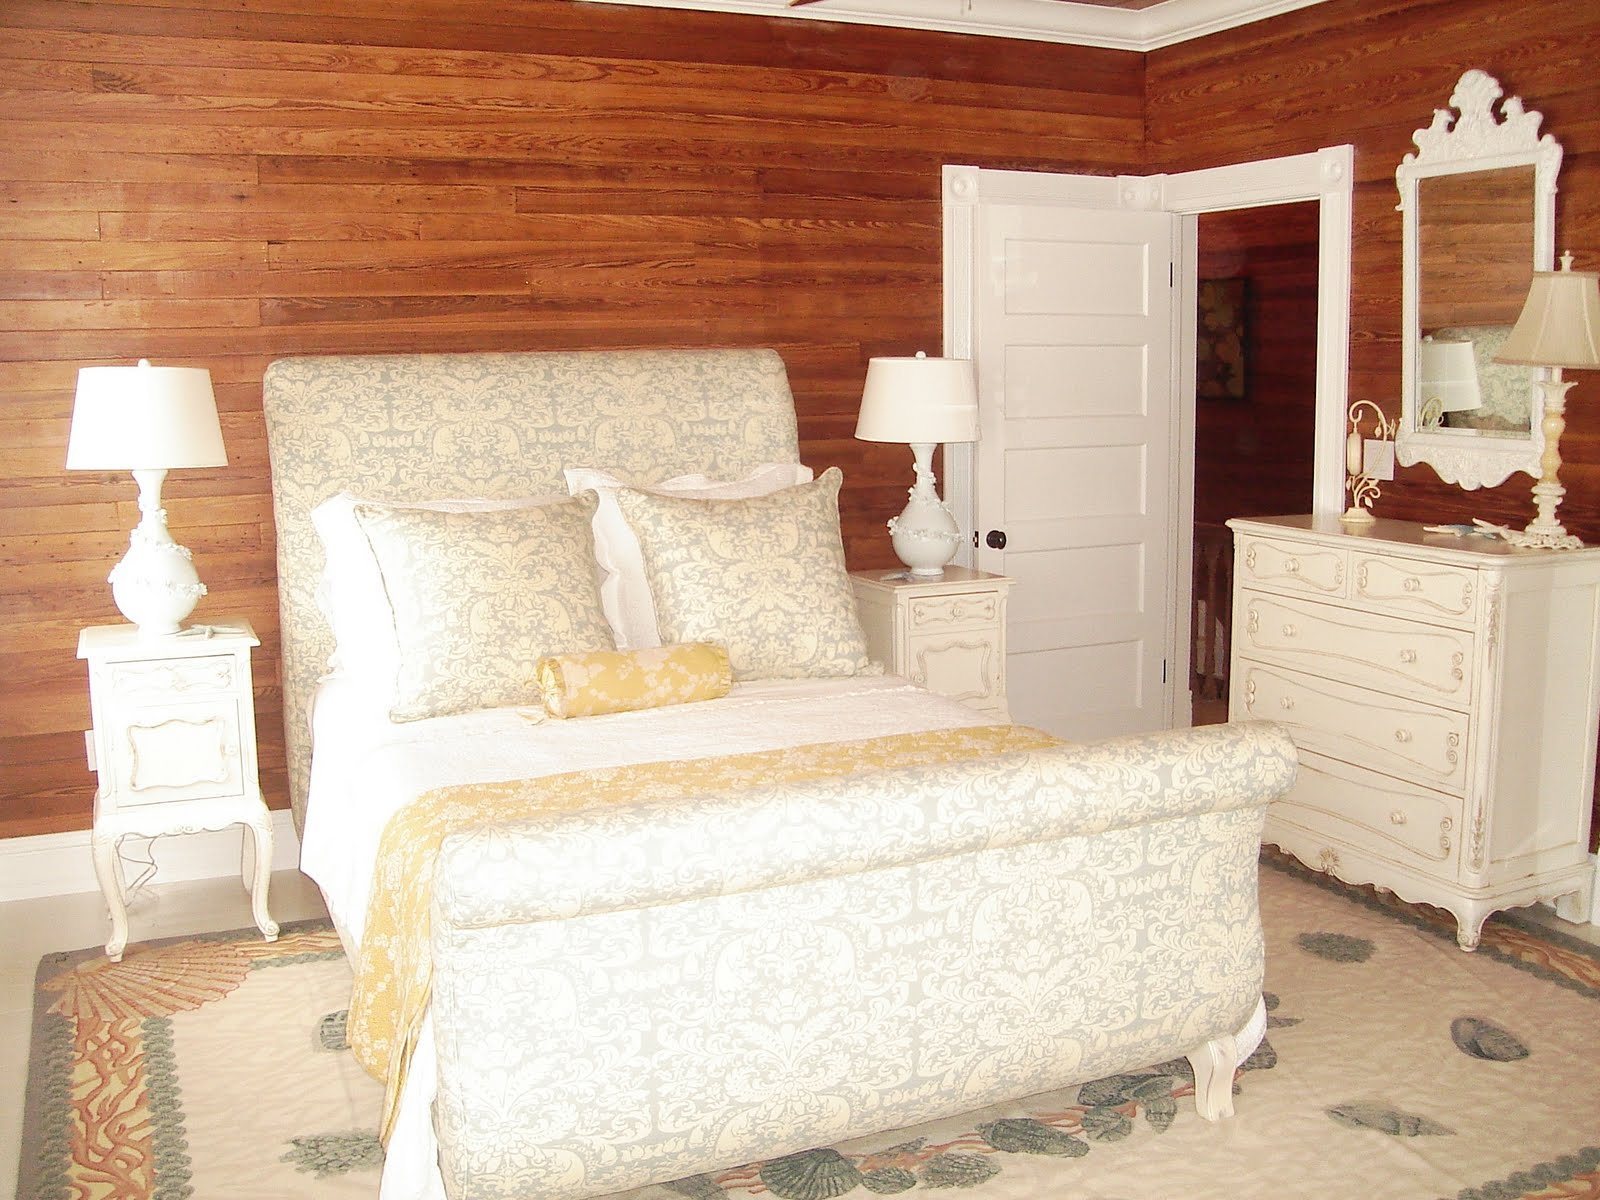 Style key west a tale of two bedrooms for Key west style bedroom furniture